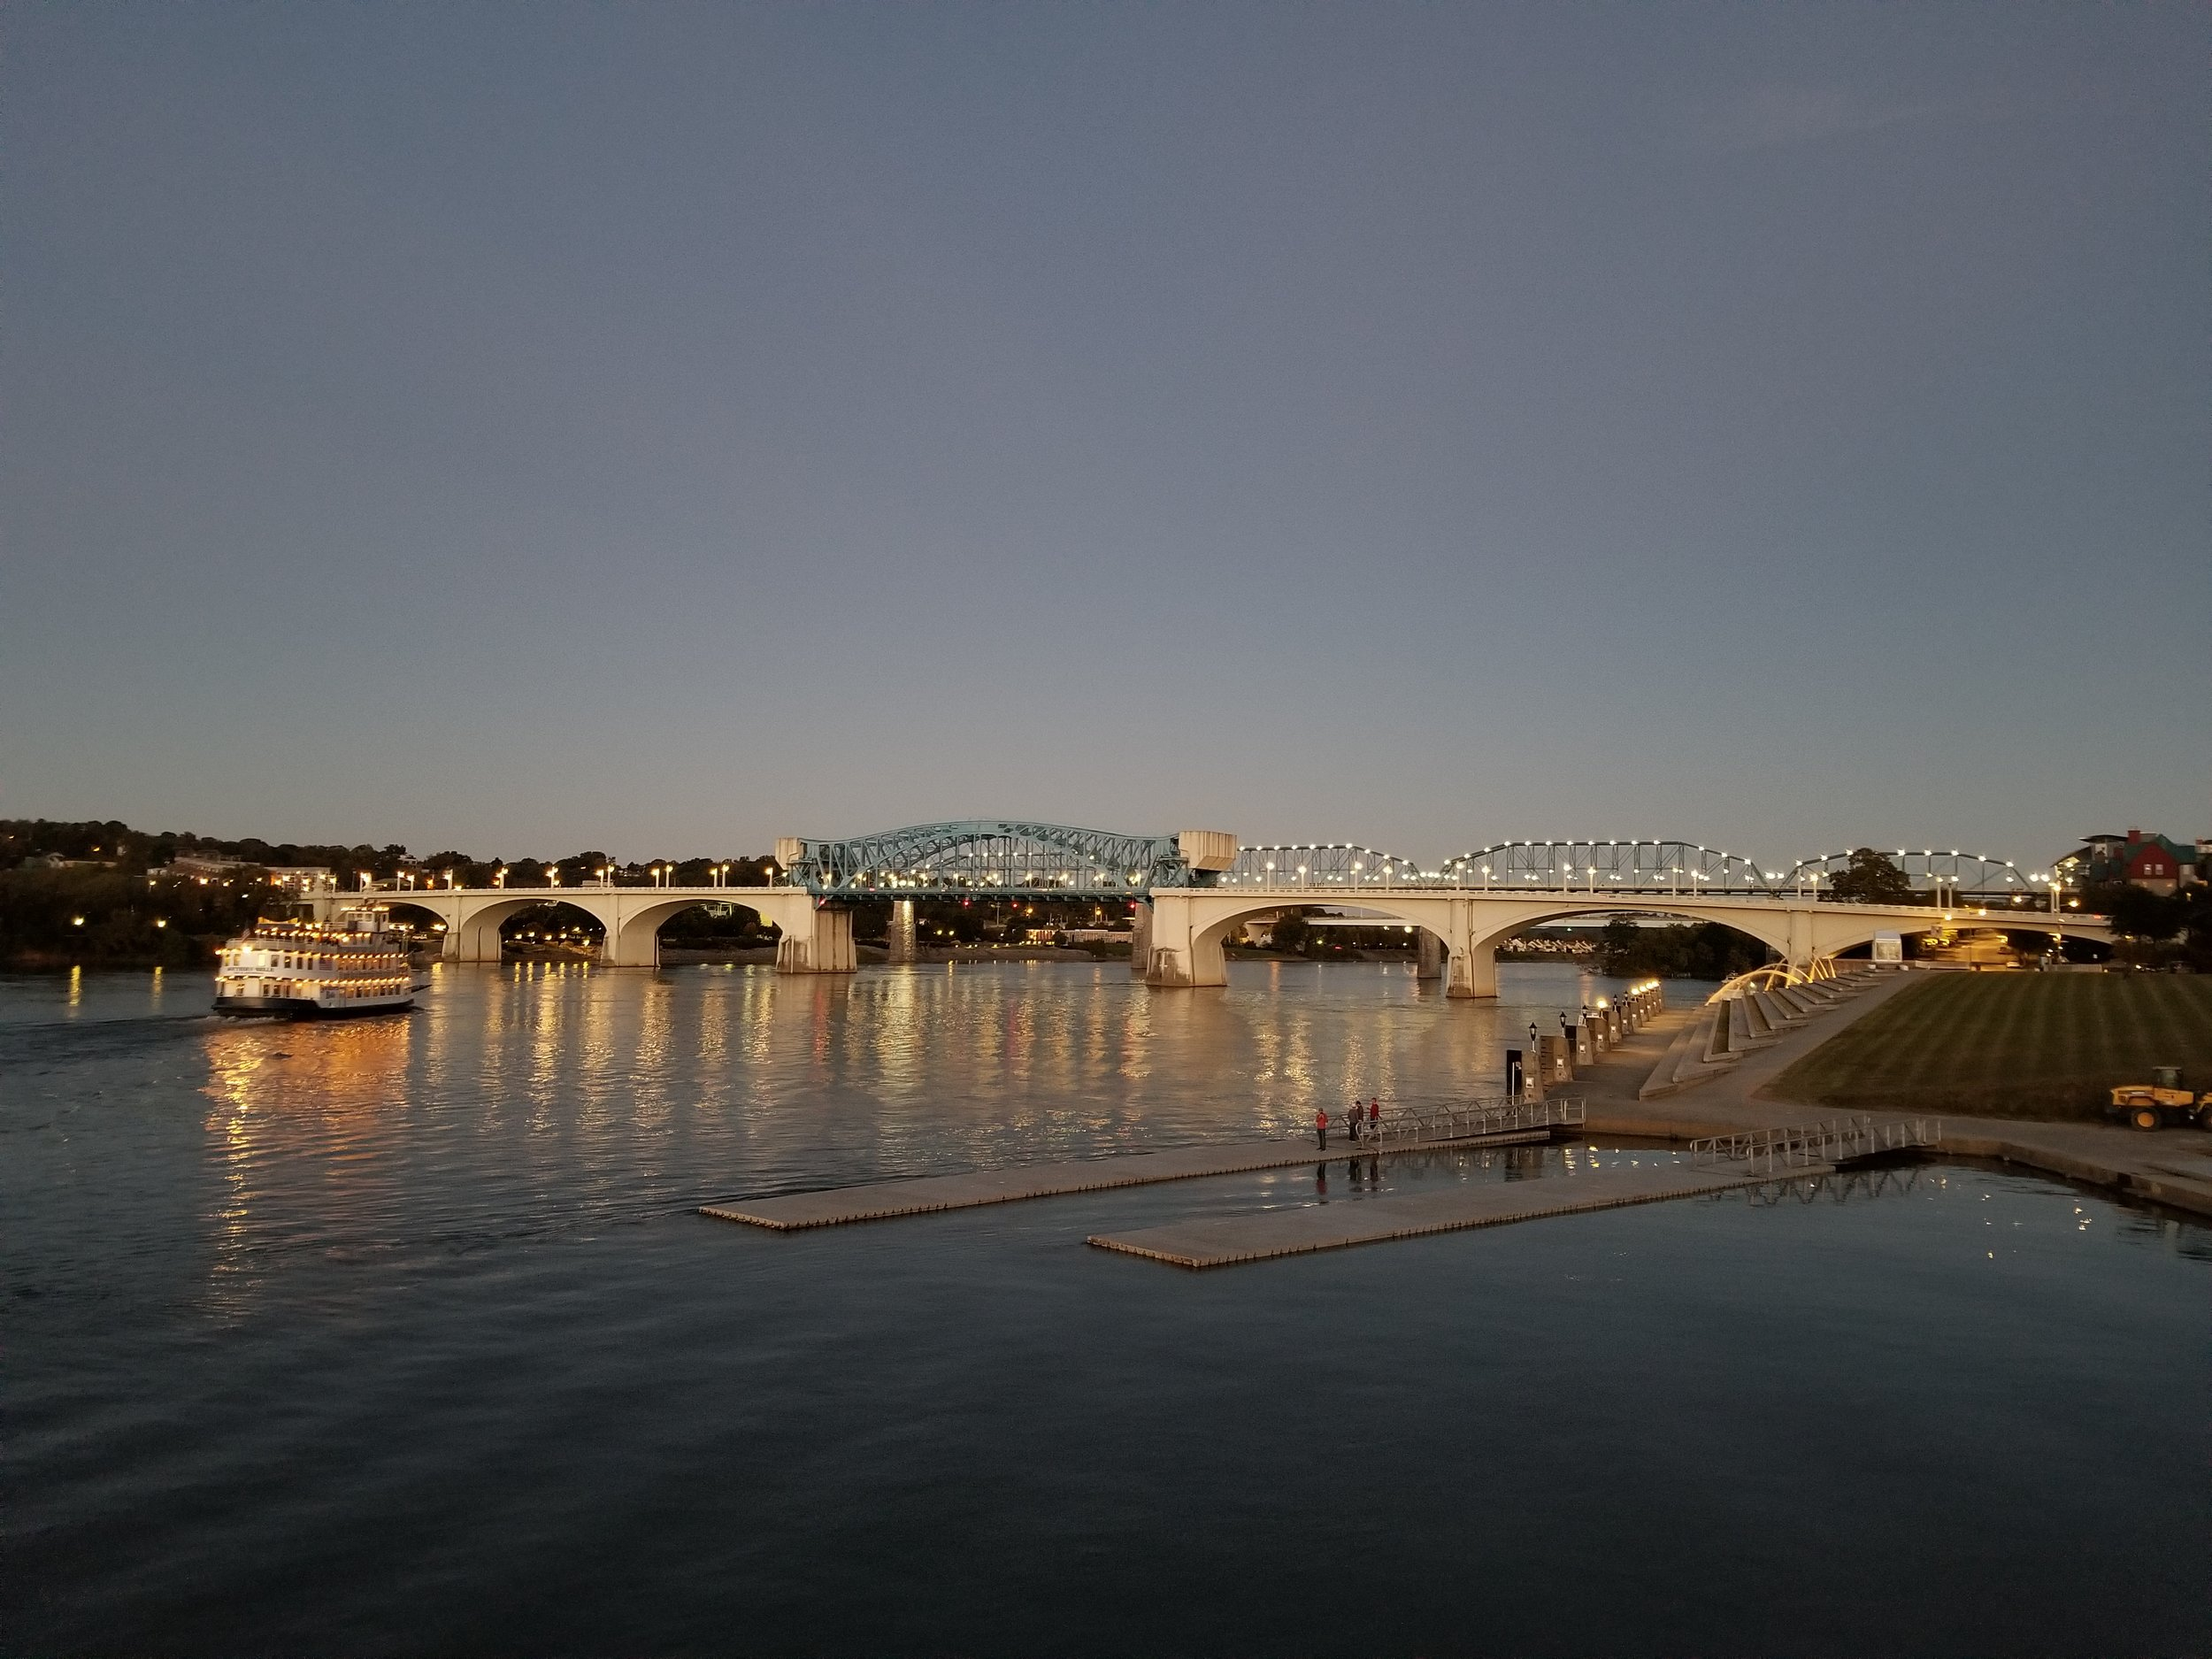 A nice dusk view of the Tennessee River in Chattanooga.